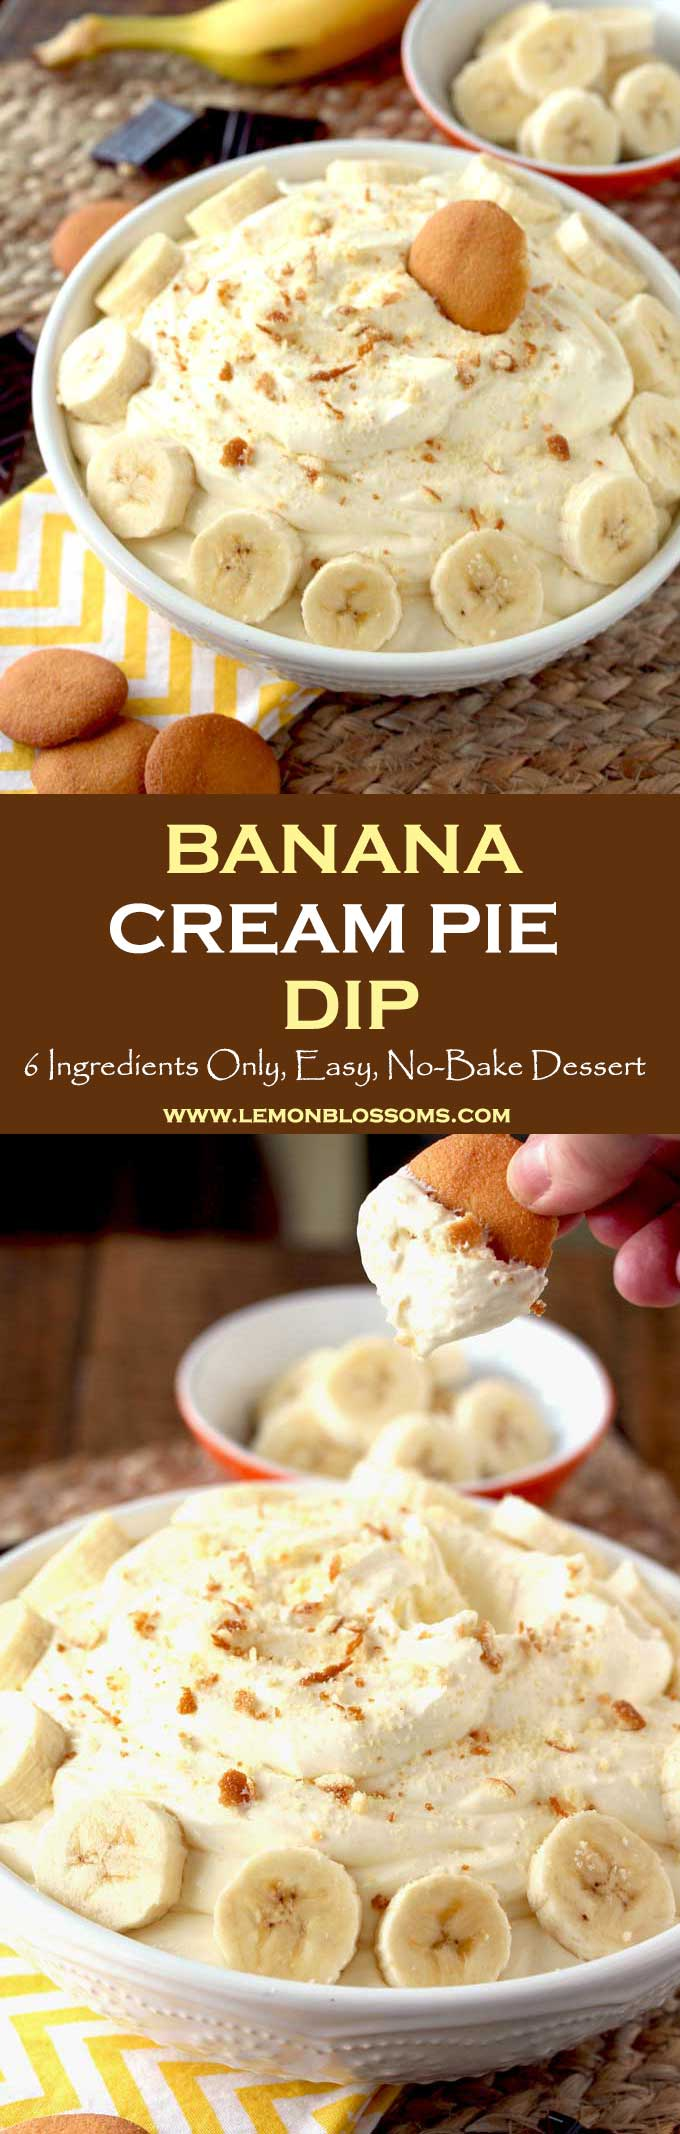 This Banana Cream Pie Dip recipe is super easy and quick to make! With only a handful of ingredients, this no-bake dip is perfect for any occasion. All the amazing flavors of a banana cream pie in a smooth, creamy and silky dip! #bananacream #pie #dip #dessert #easydessert #nobake #creampie #sweets